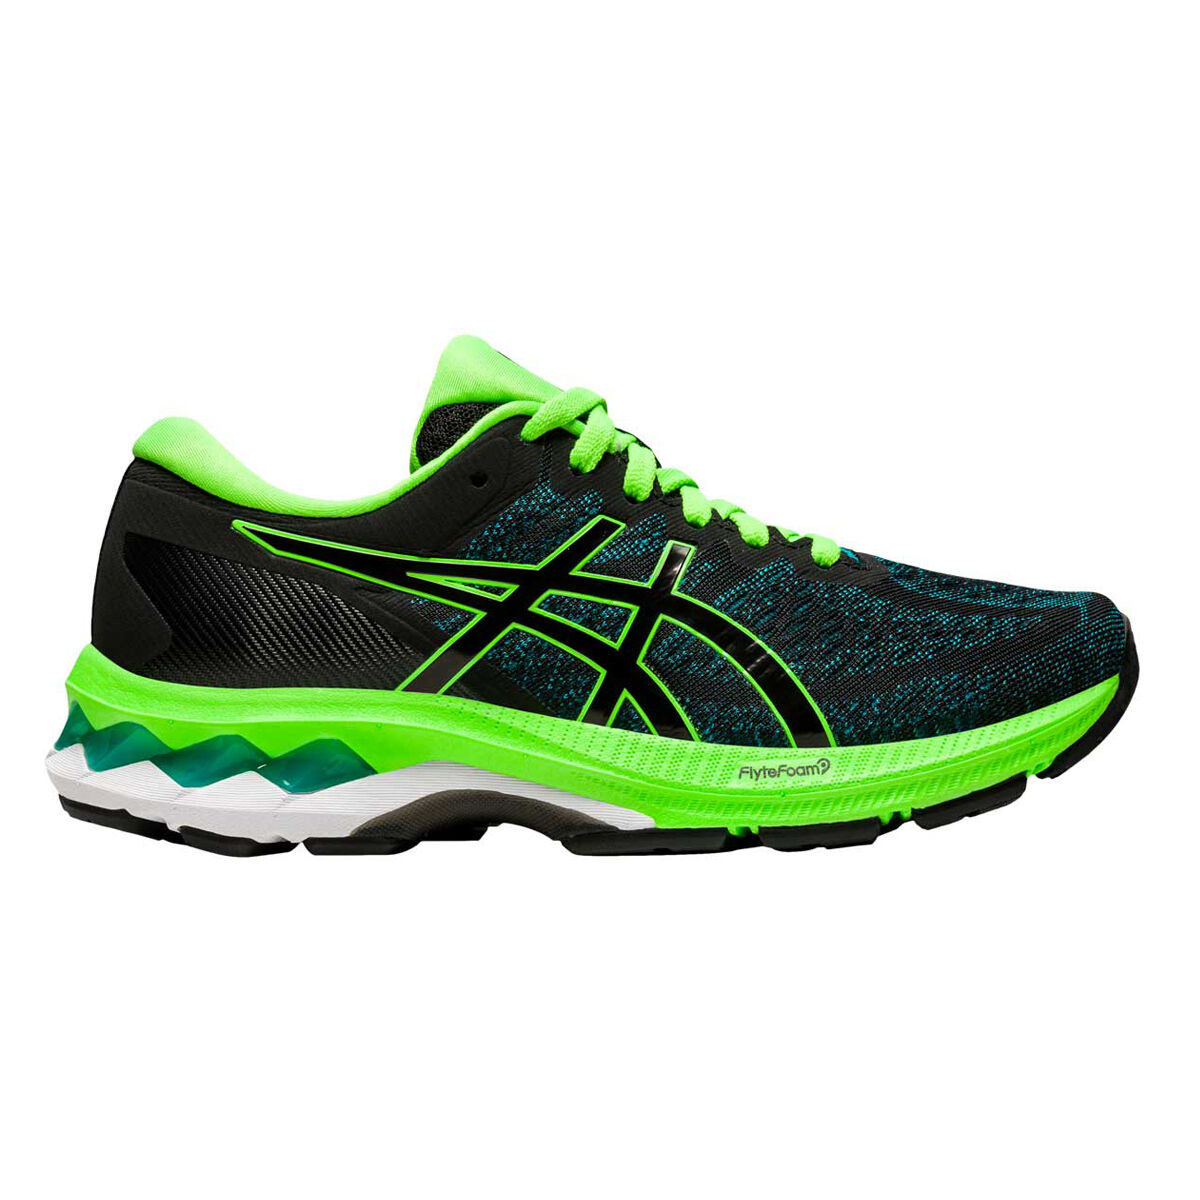 good things about adidas shoes for boys nmds | Asics GEL Kayano 27 Kids Running Shoes